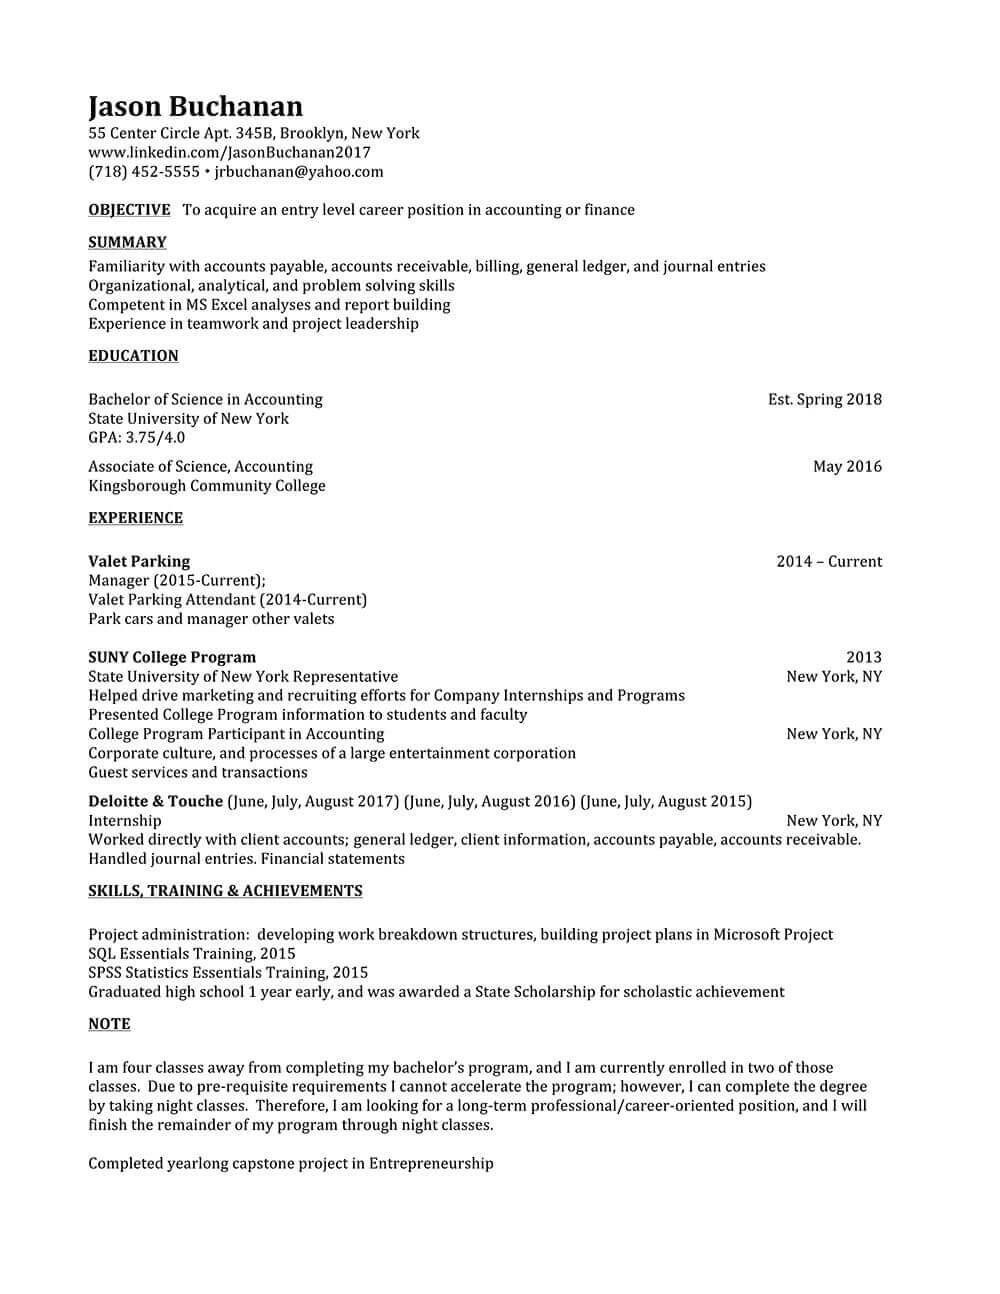 professional resume writing services monster writers linkedin before spacing high Resume Professional Resume Writers Linkedin